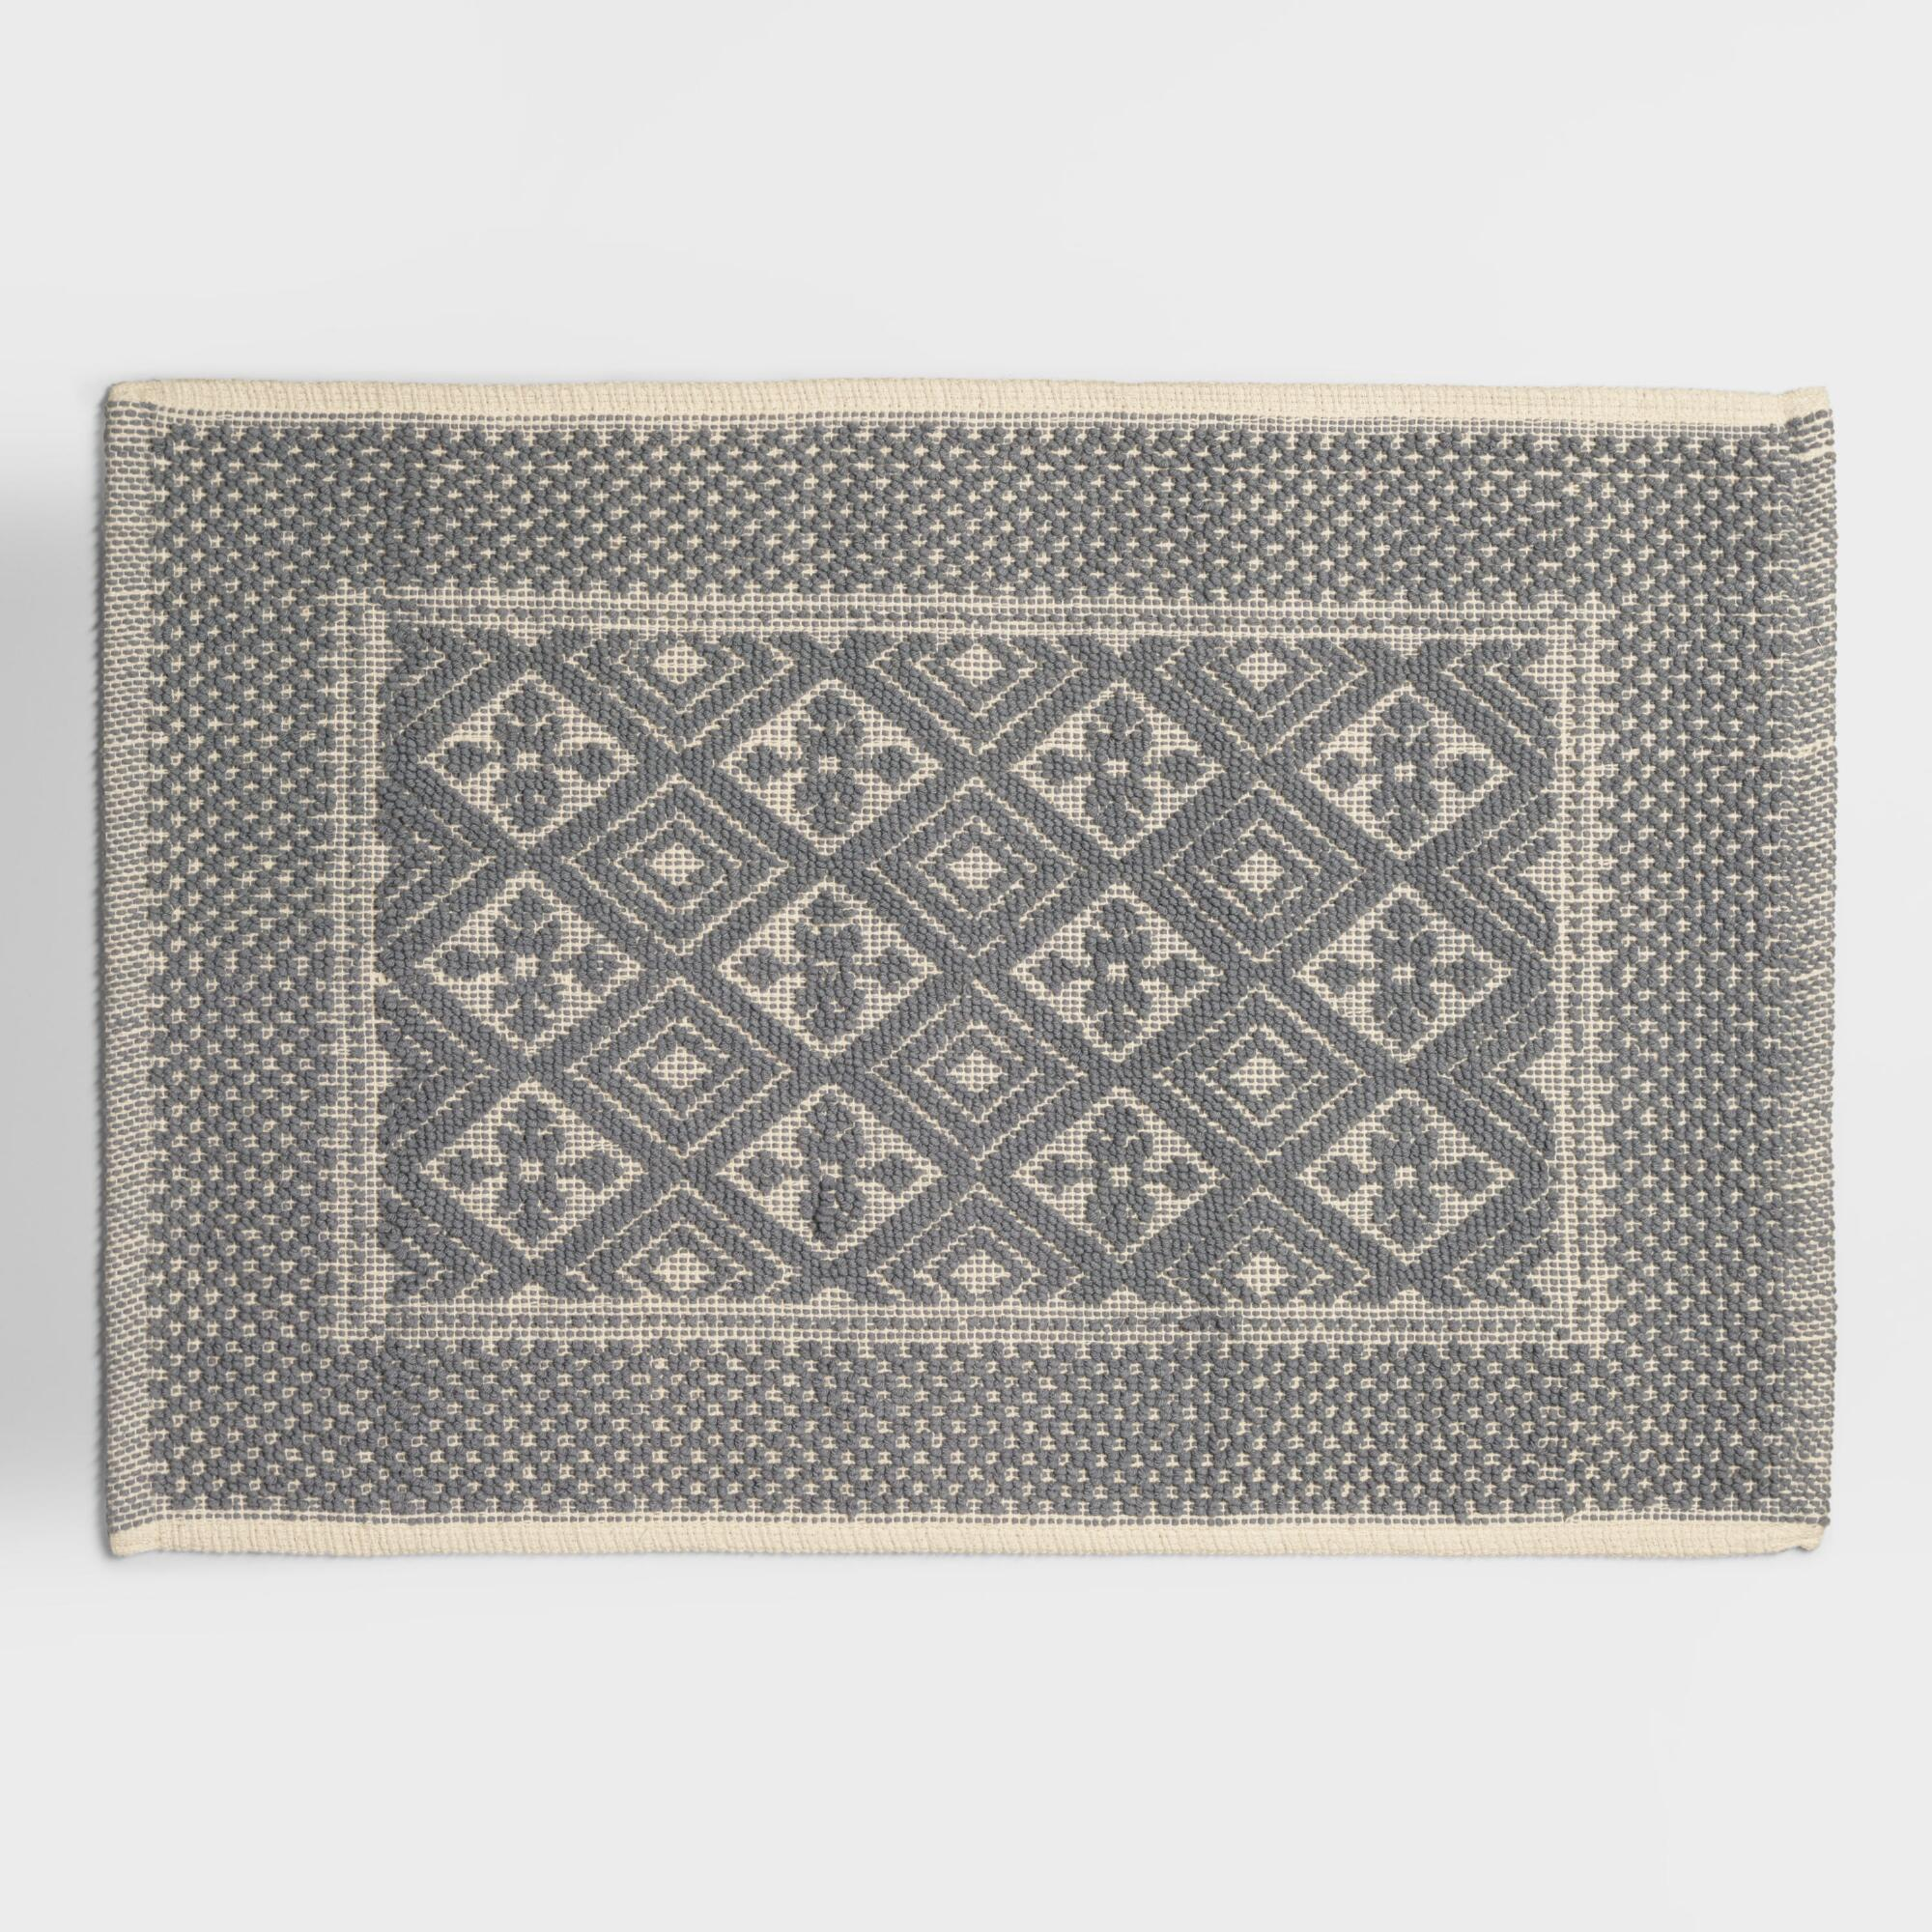 . Bath Rugs   Bath Mats  Bath Rug Sets   World Market